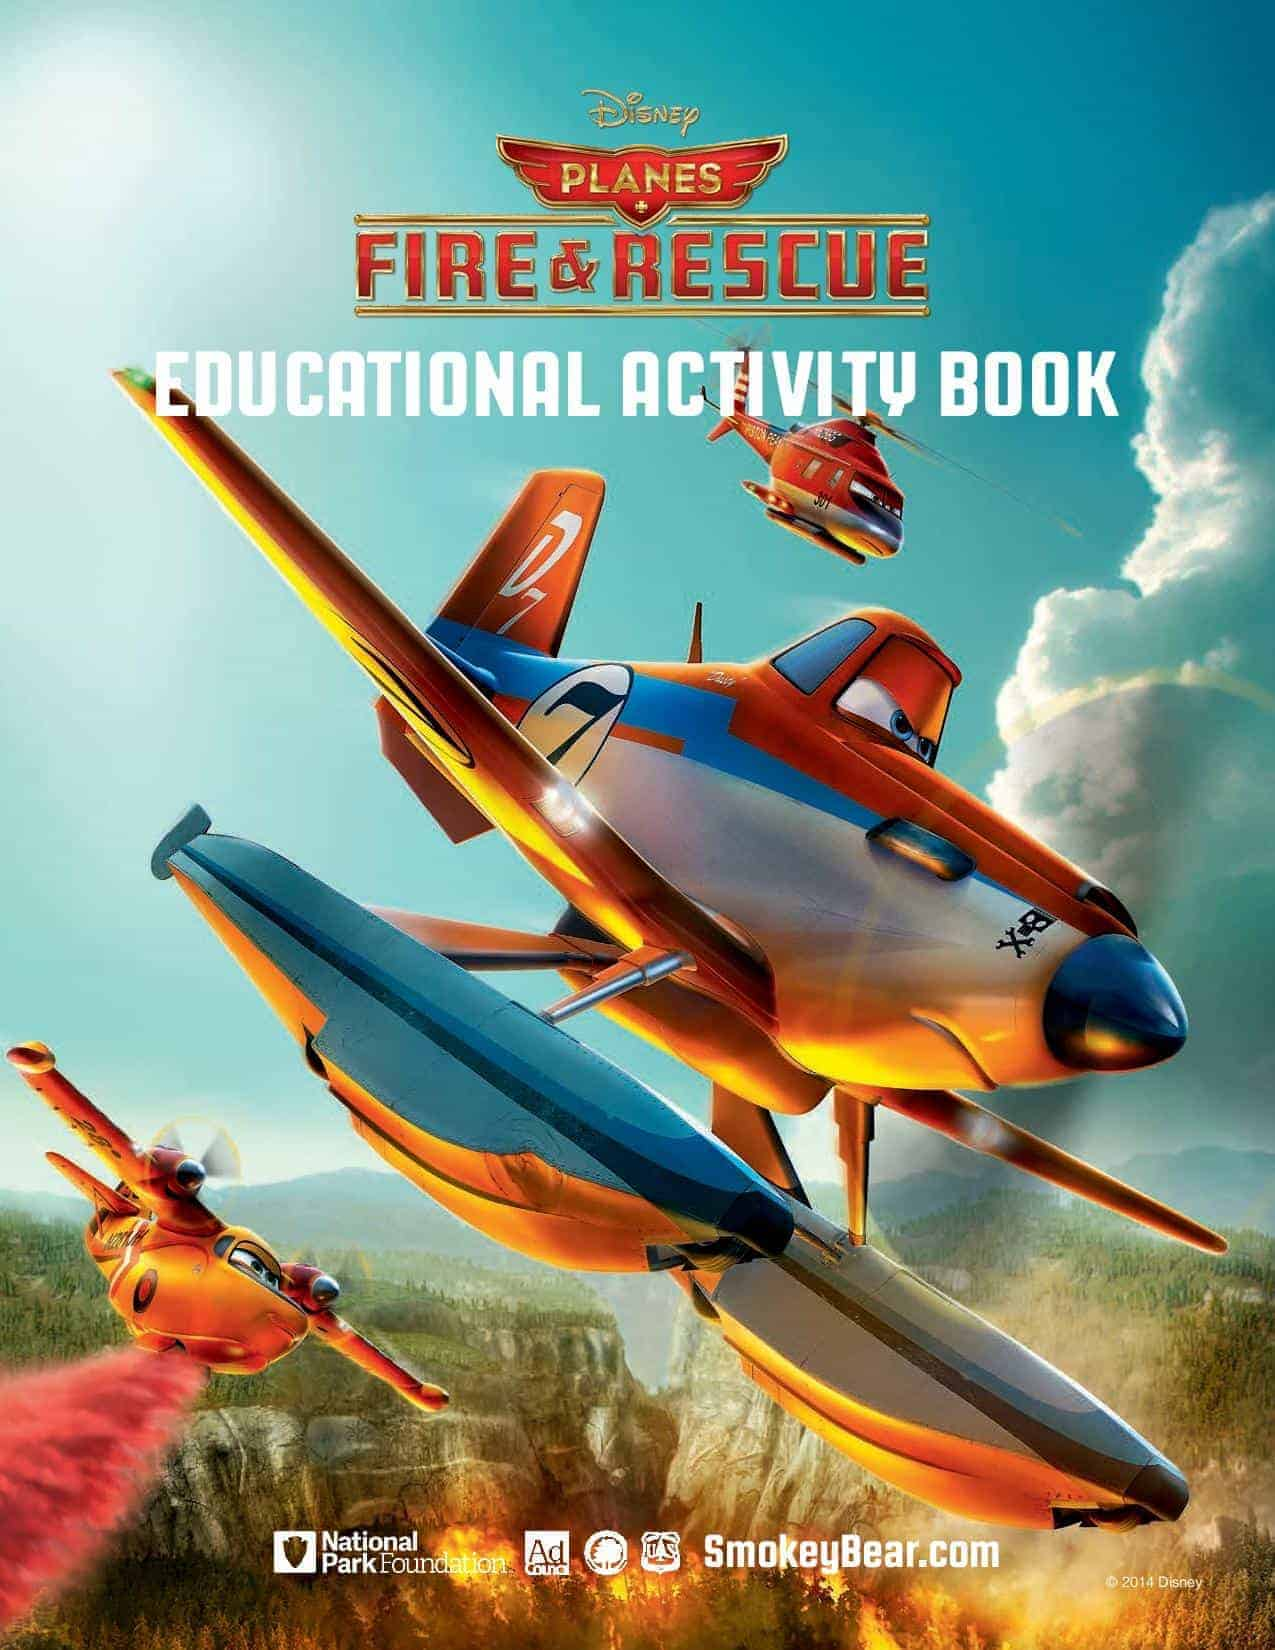 Educational Activity Guide Planes Fire and Rescue